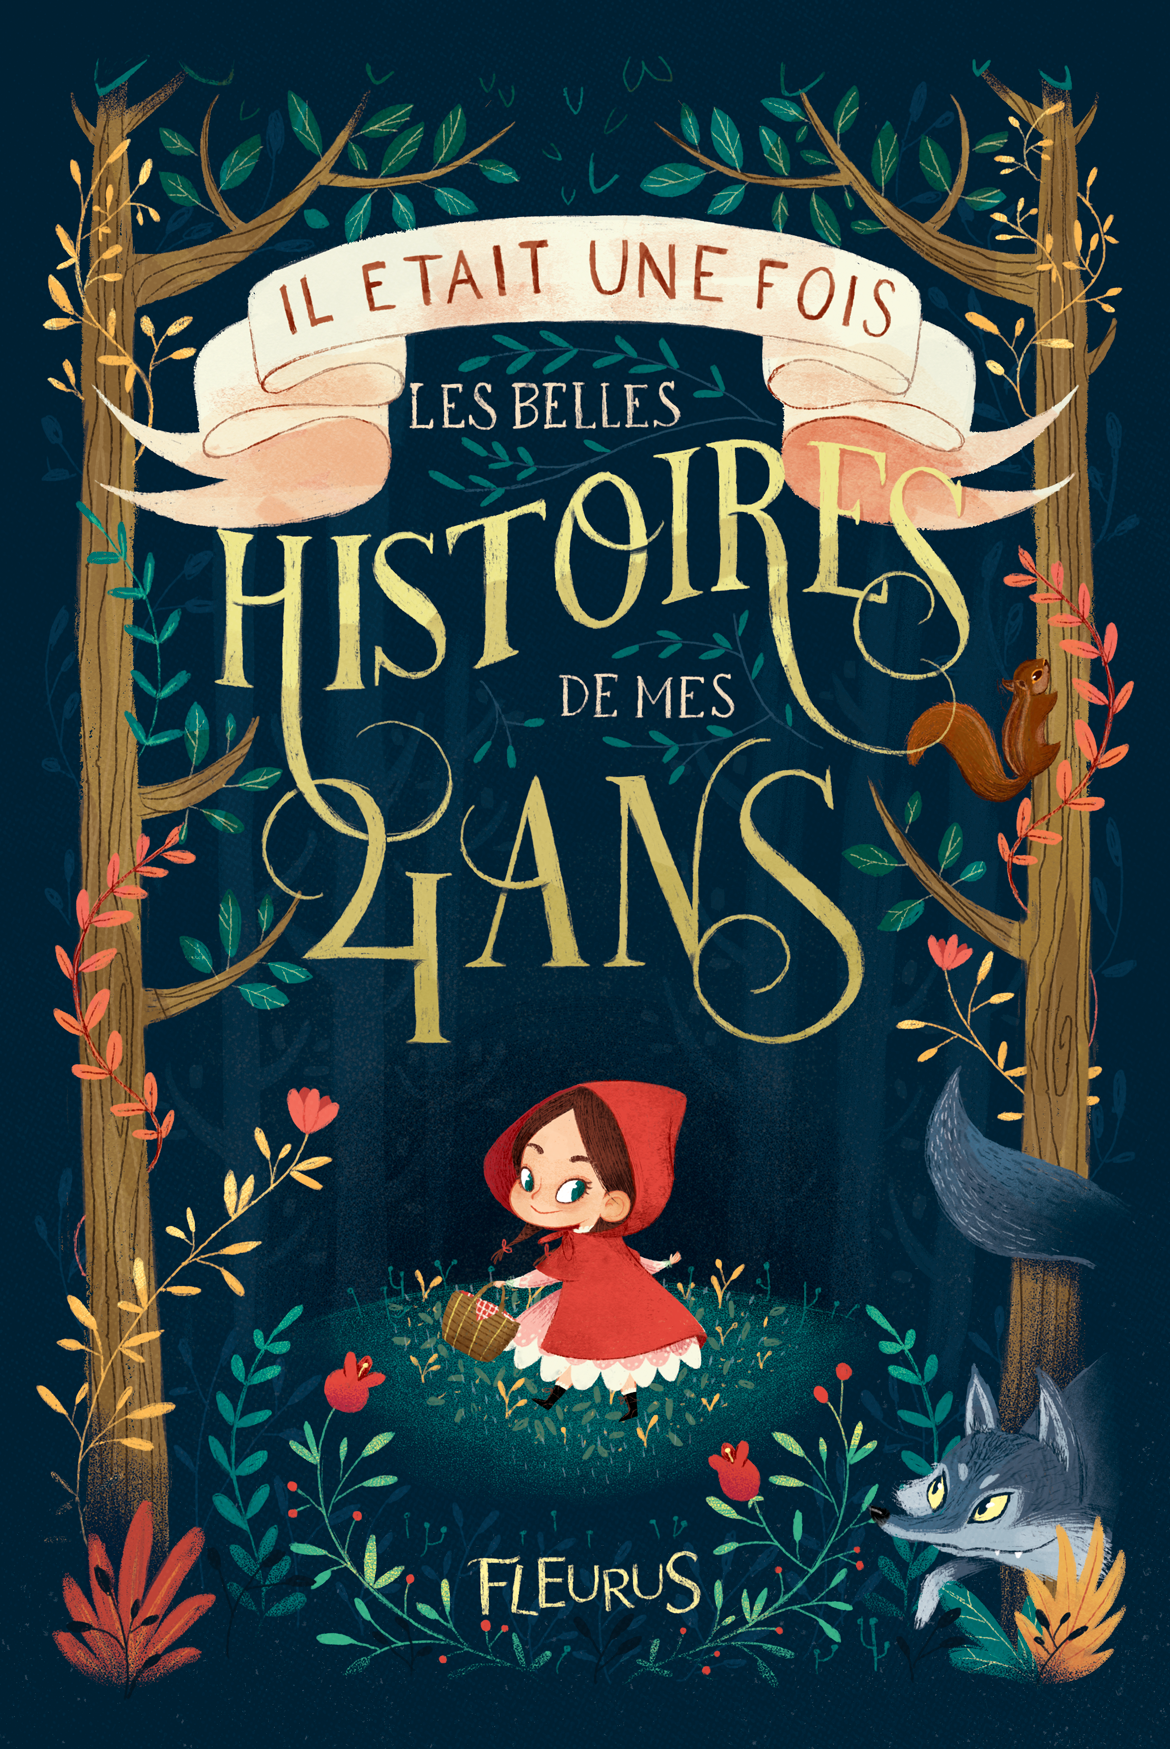 Book Cover Design Kids ~ Children s book covers for fleurus editions on behance